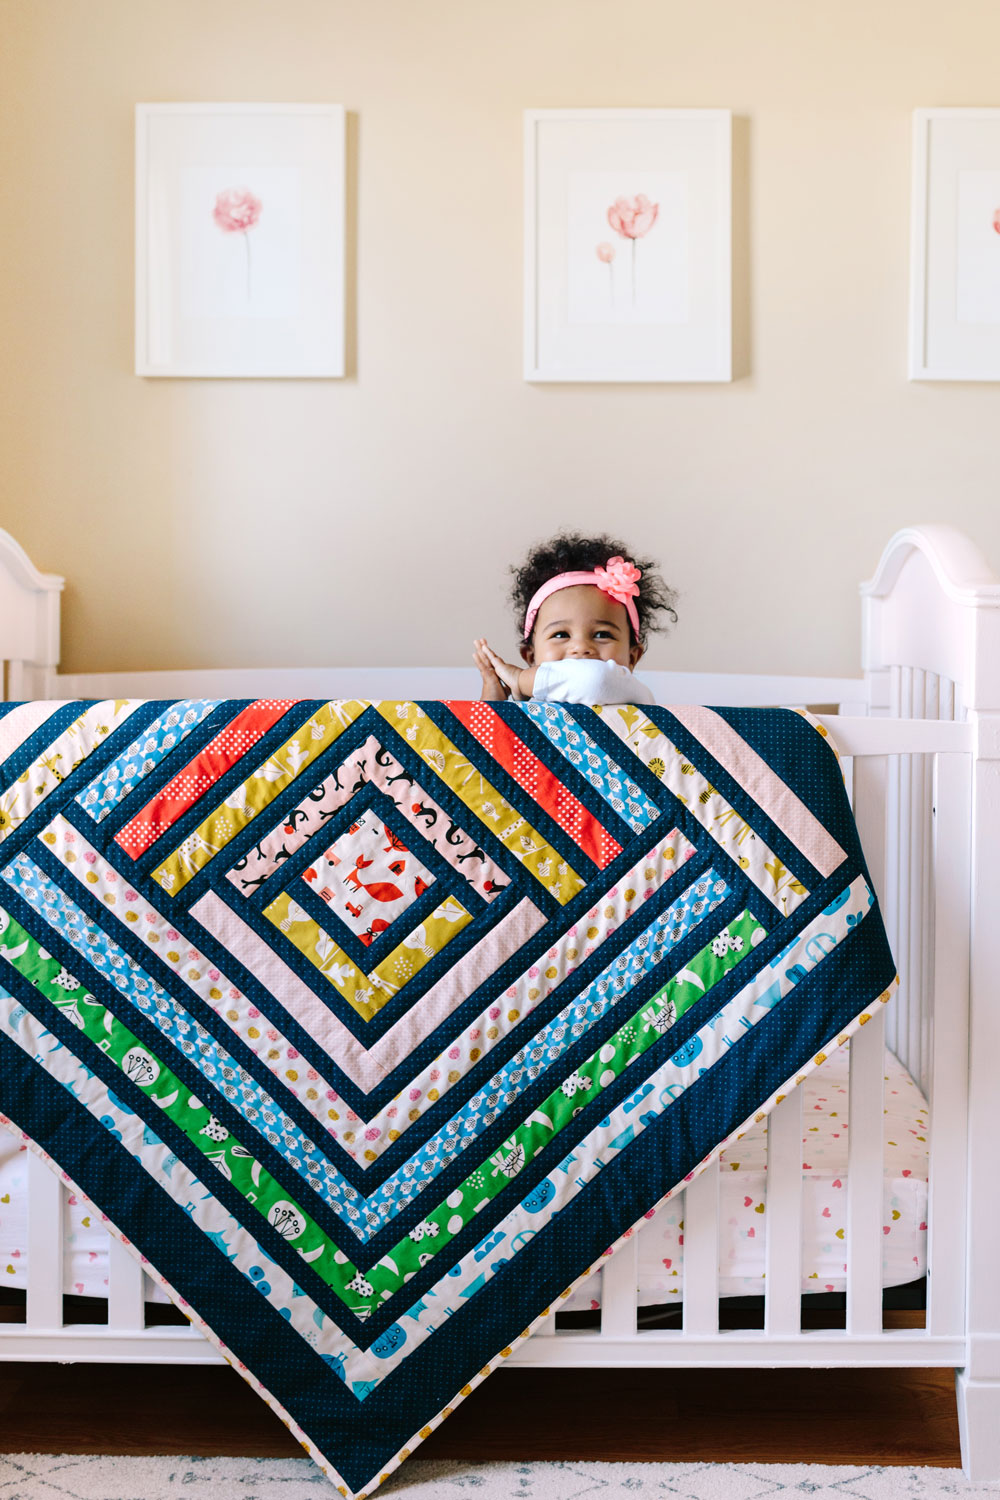 This 4-step guide will help you plan your quilts this year and maximize your productivity! A clear plan is the best way to have fun and get creative. suzyquilts.com #babyquilt